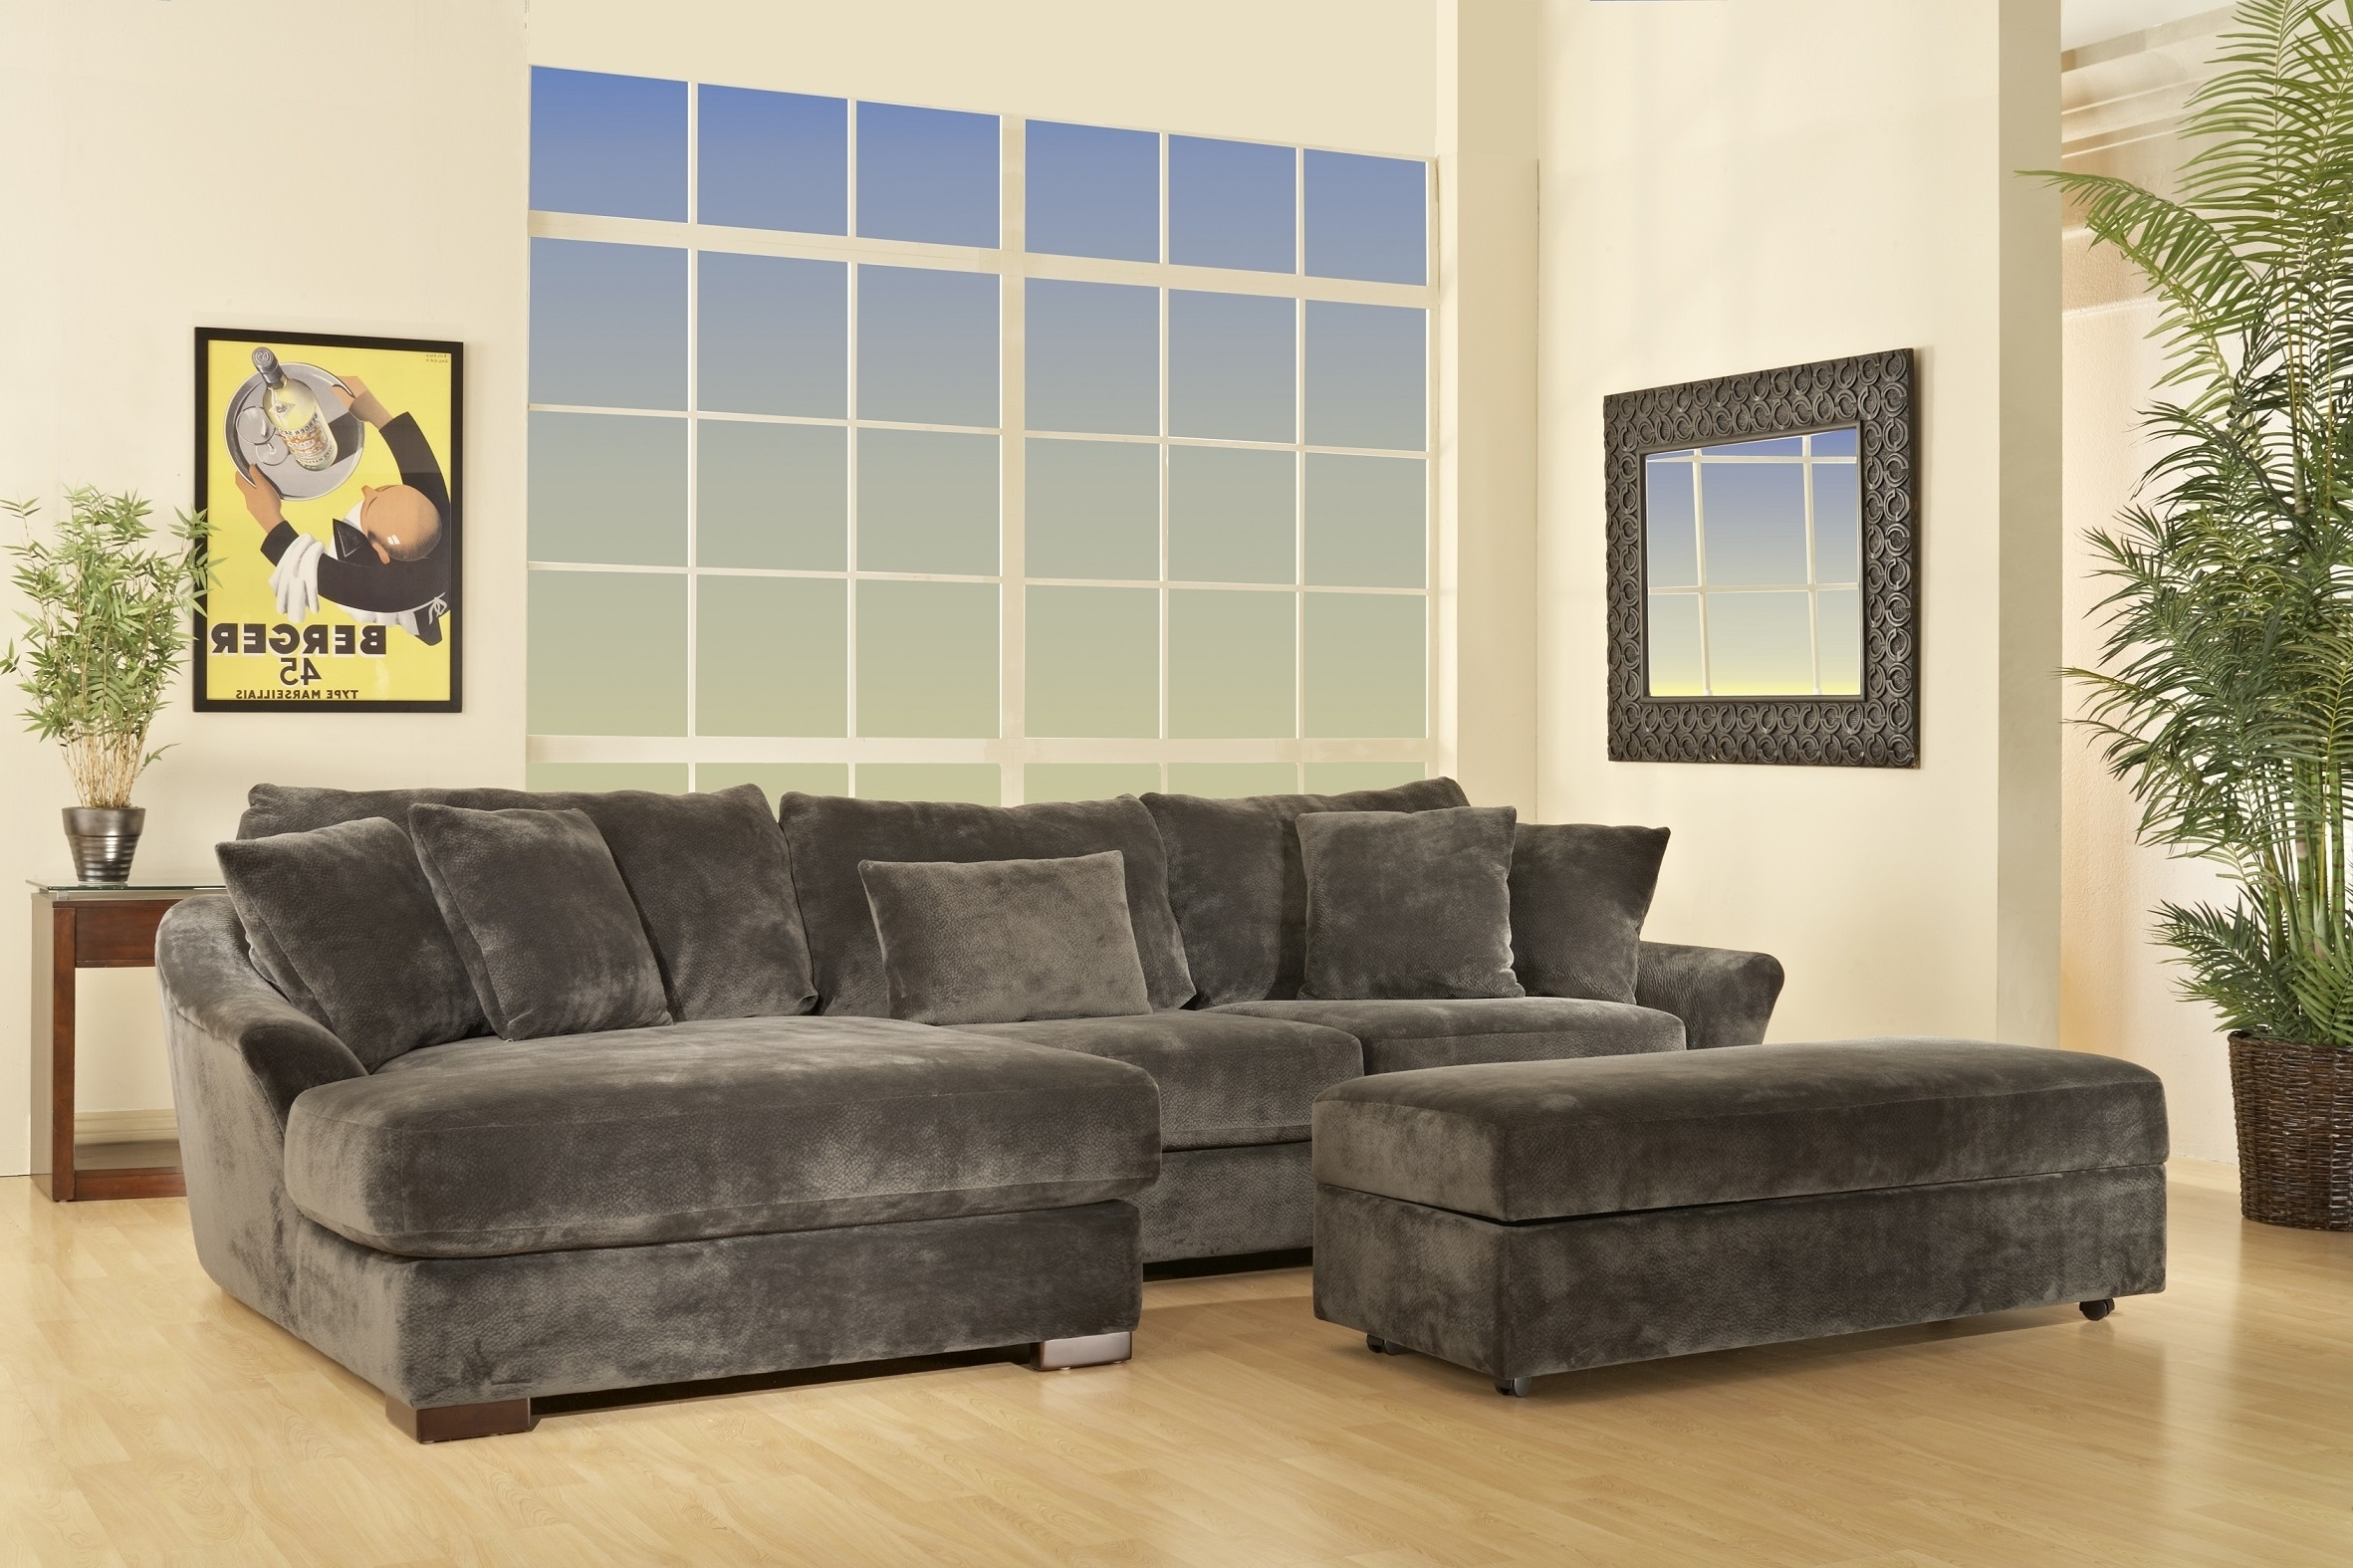 Sectional Sofas Atlanta Ga – 28 Images – Leather Sectional Sofa With Regard To Sectional Sofas At Atlanta (View 2 of 10)